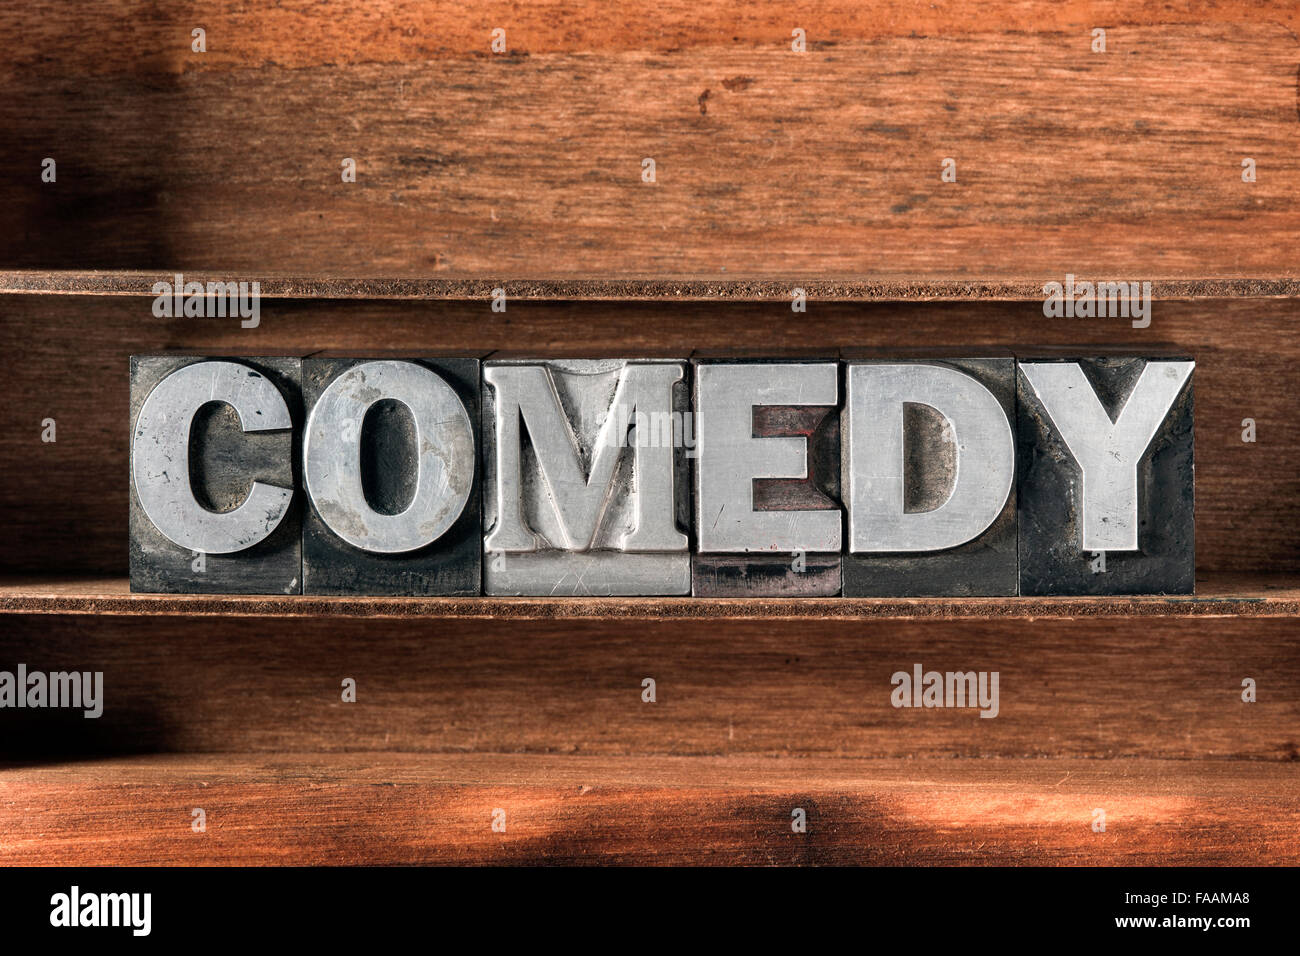 comedy word made from metallic letterpress type on wooden tray - Stock Image